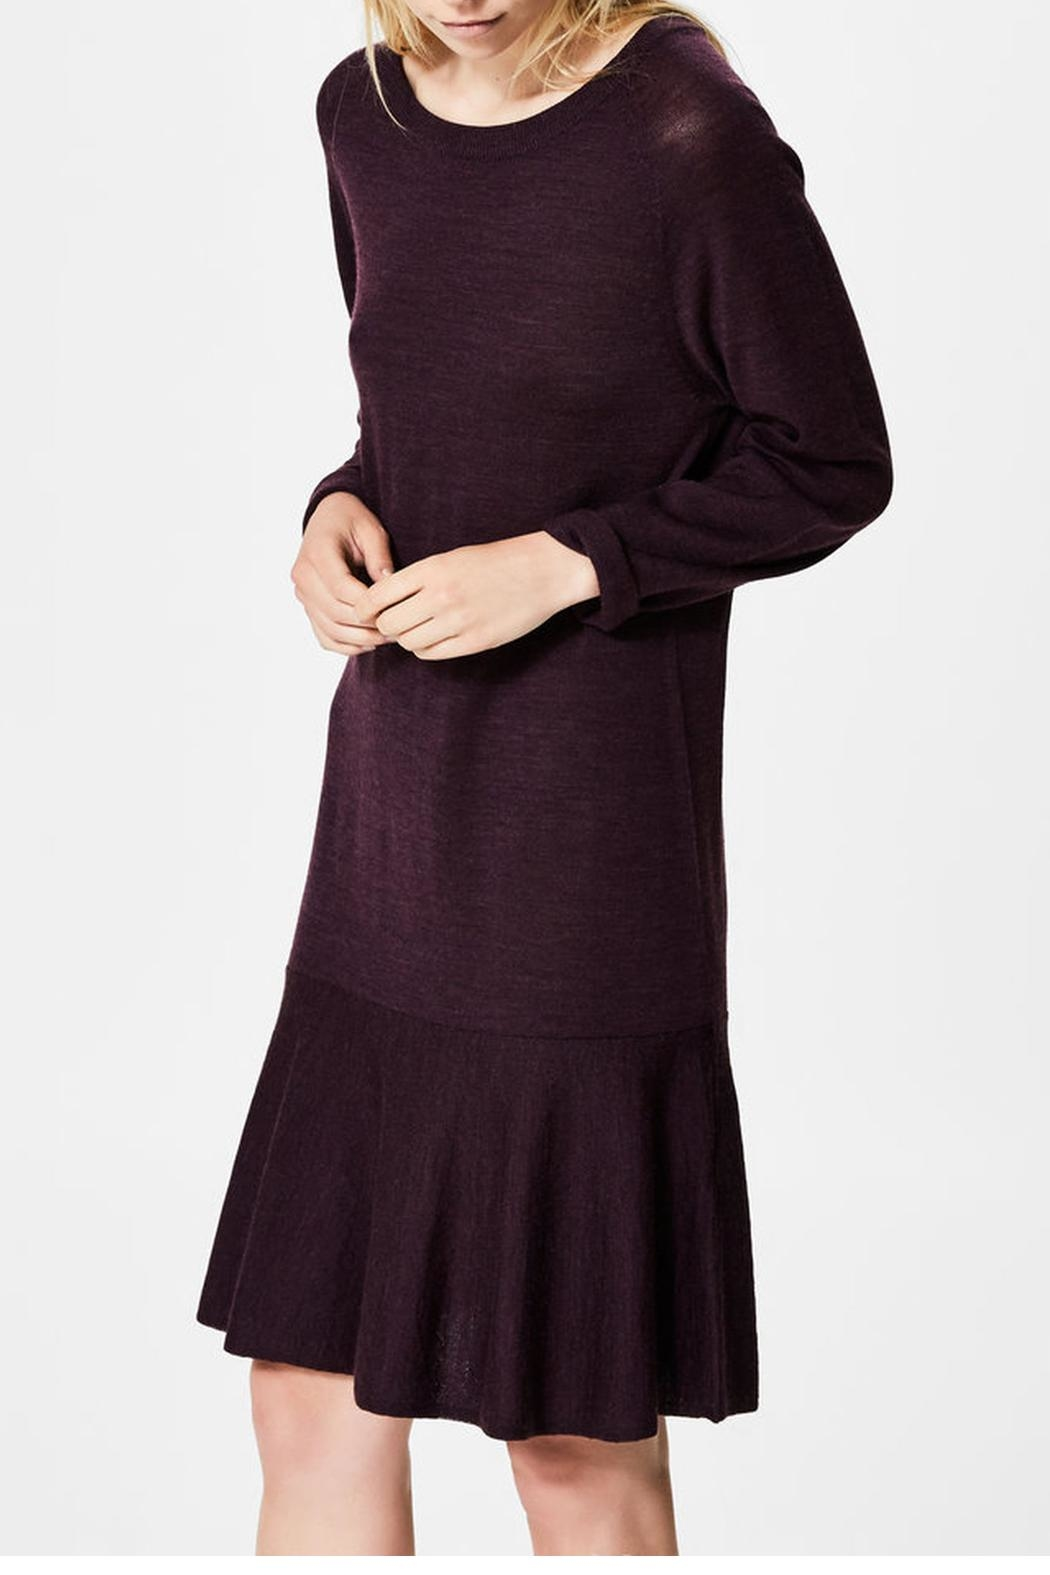 Selected Femme Merino Wool Dress - Main Image